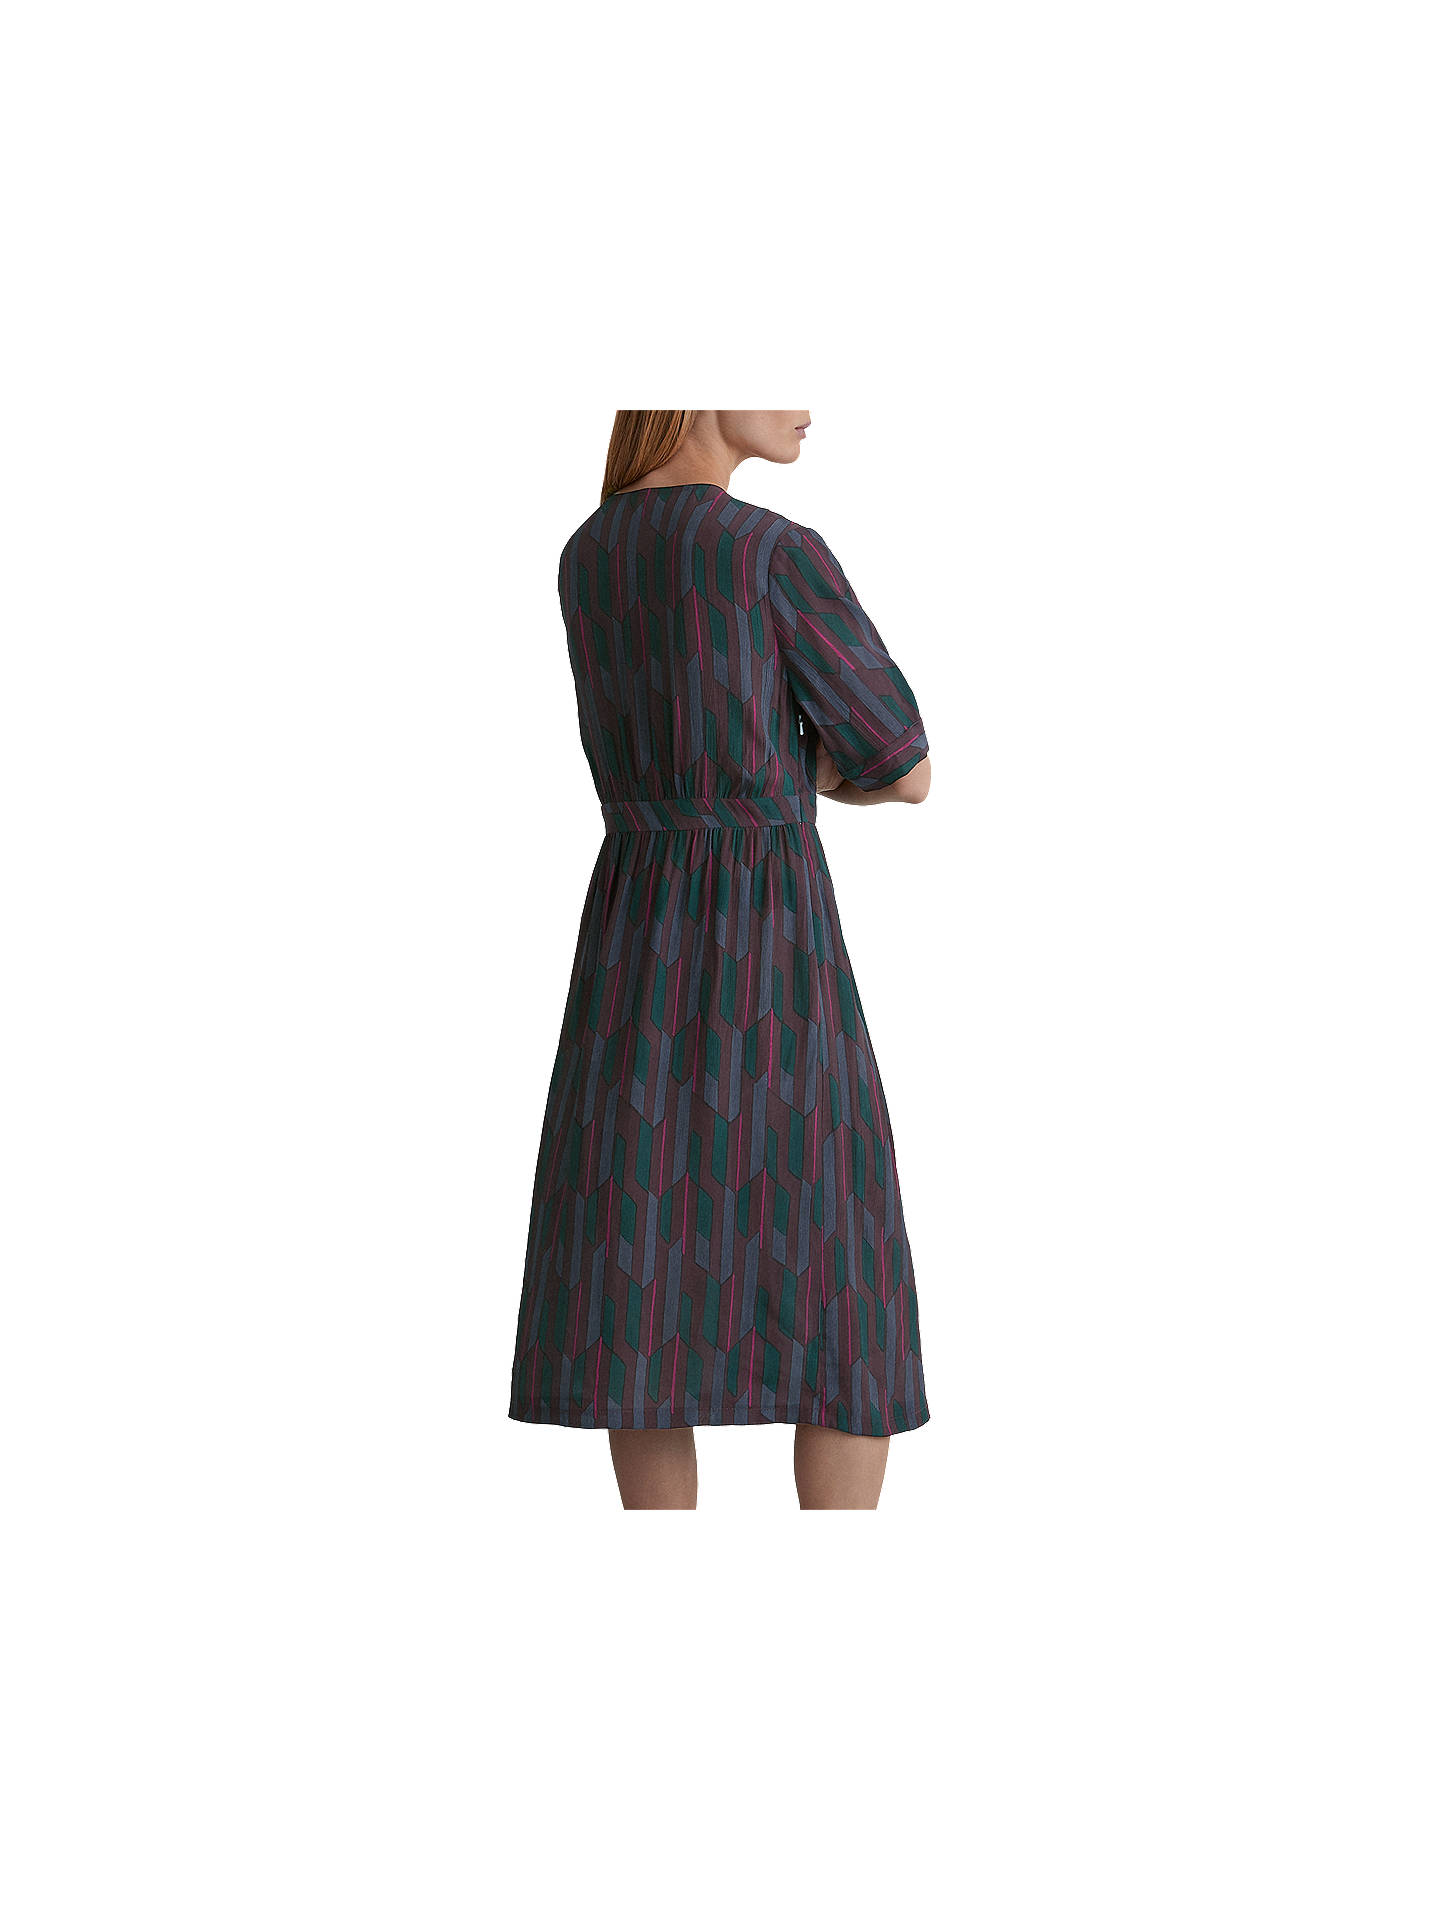 BuyToast Geo Printed V-Neck Dress, Damson, 14 Online at johnlewis.com